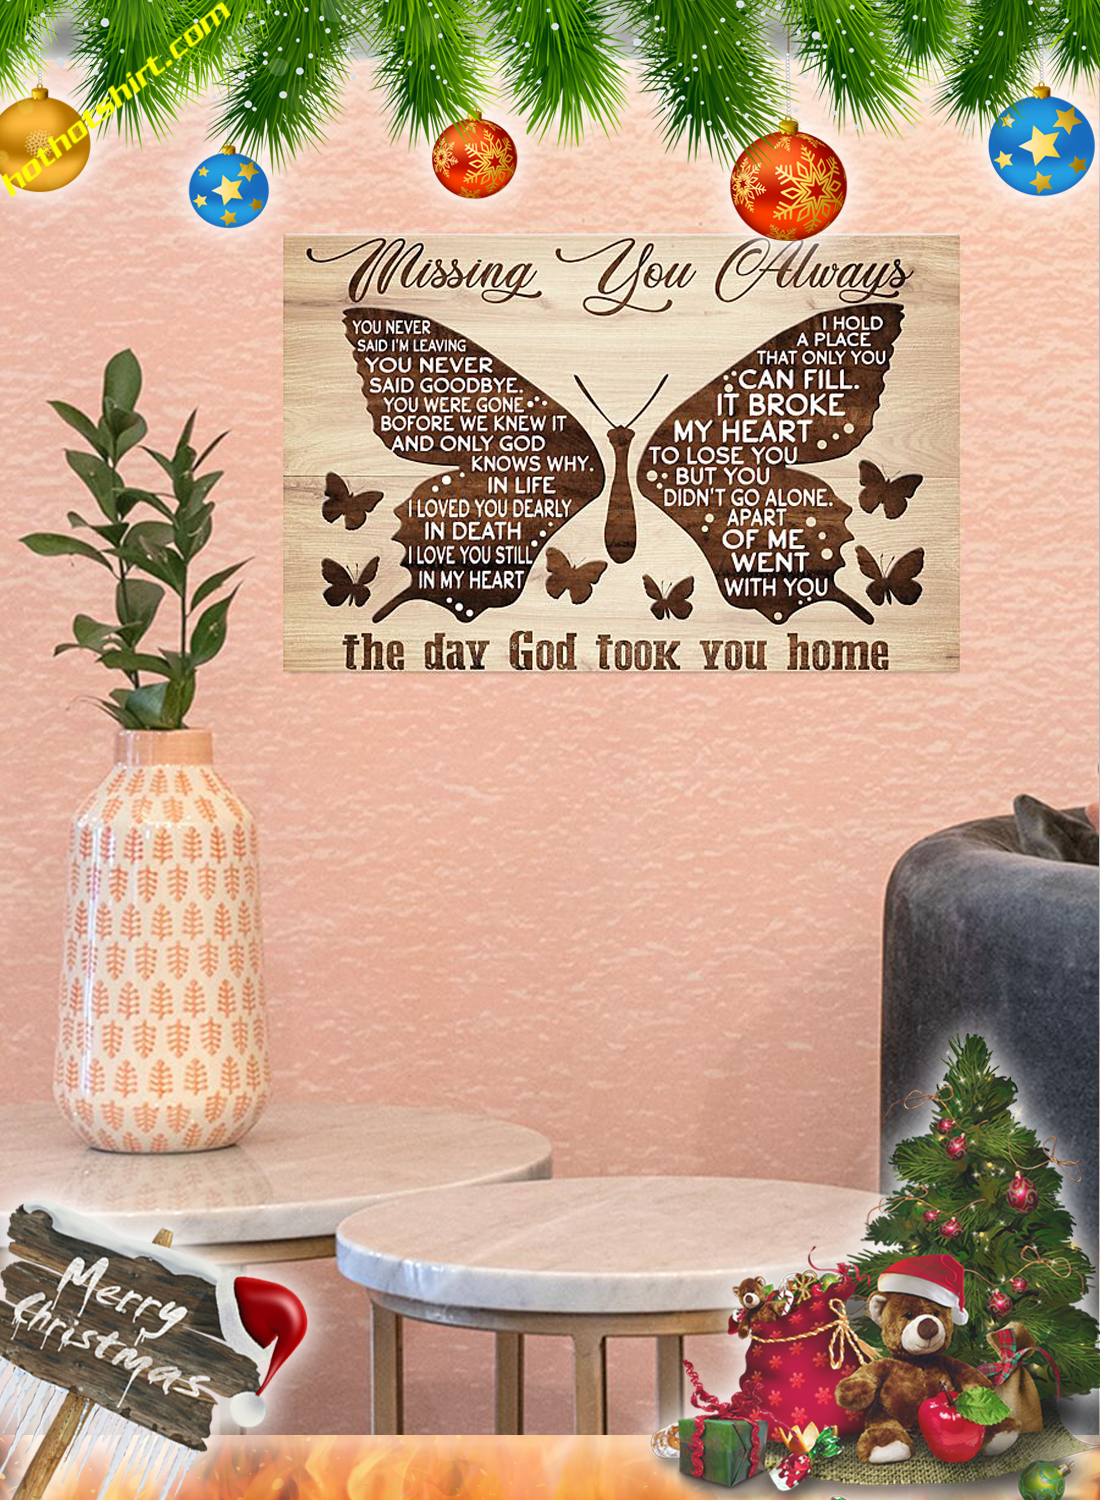 Butterfly Missing you always poster 1